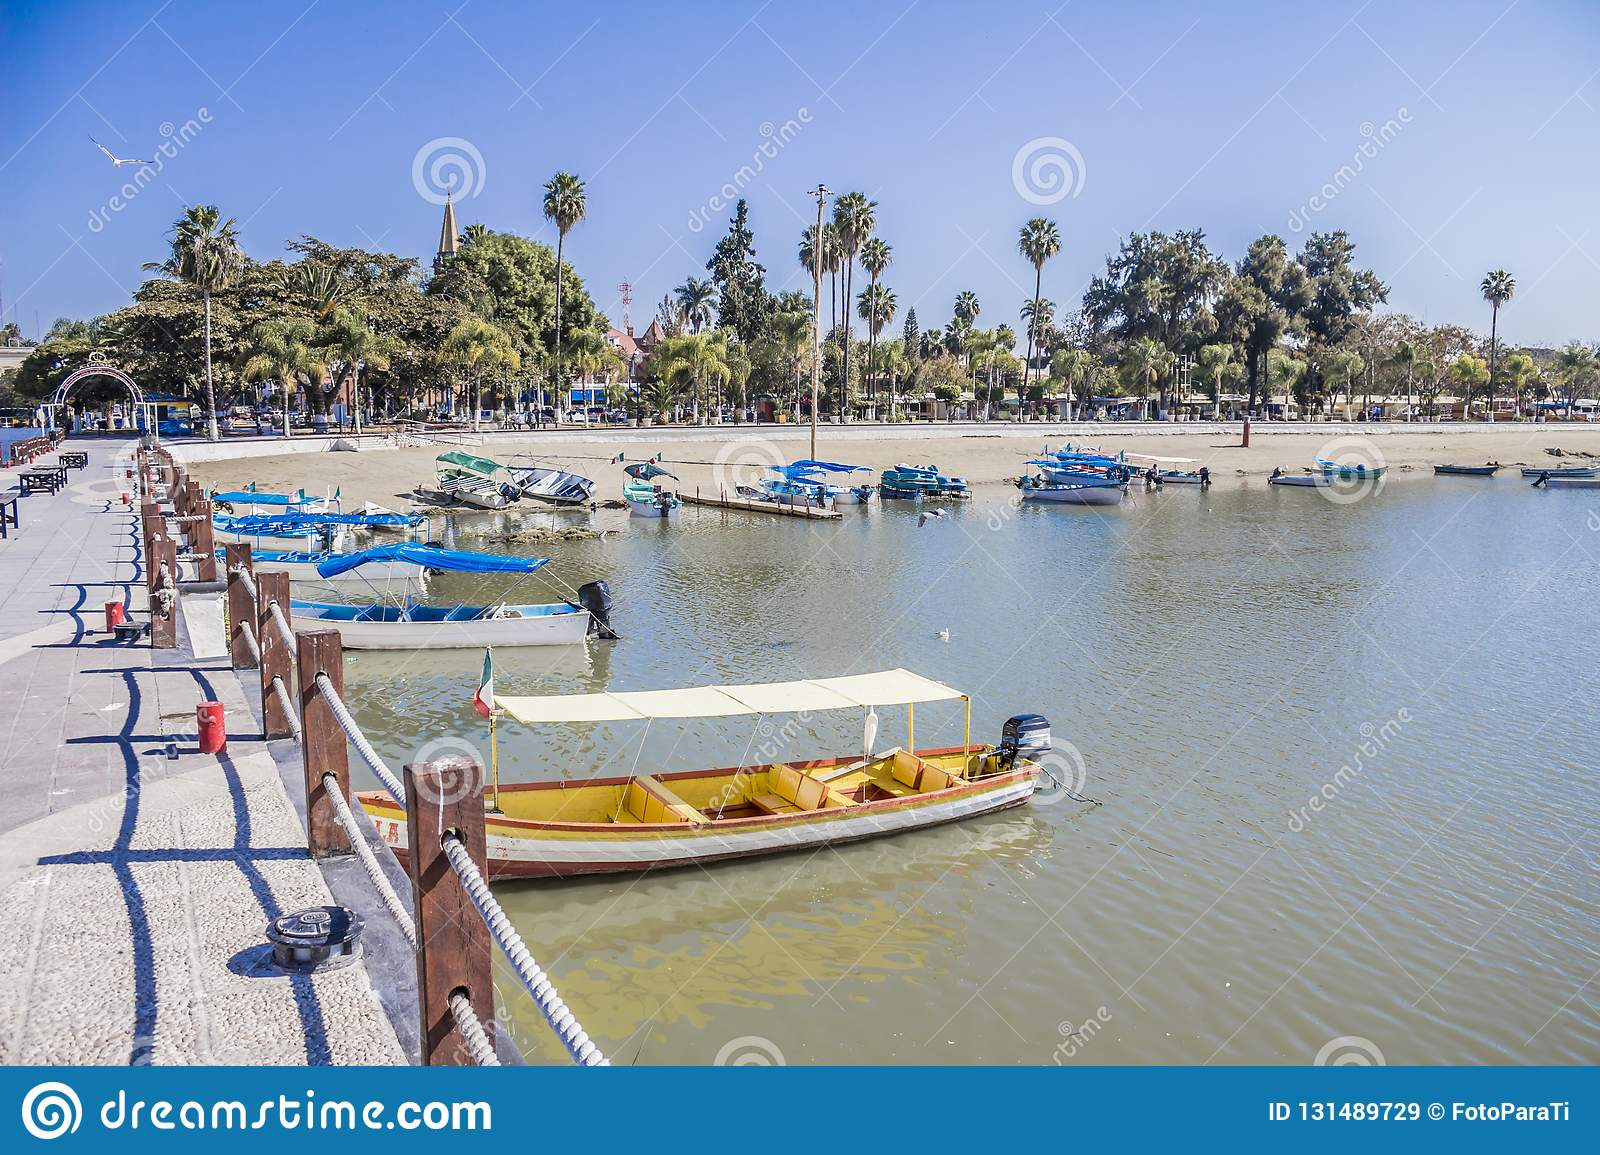 Beautiful view of boats on a pier with palm in the Chapala lake